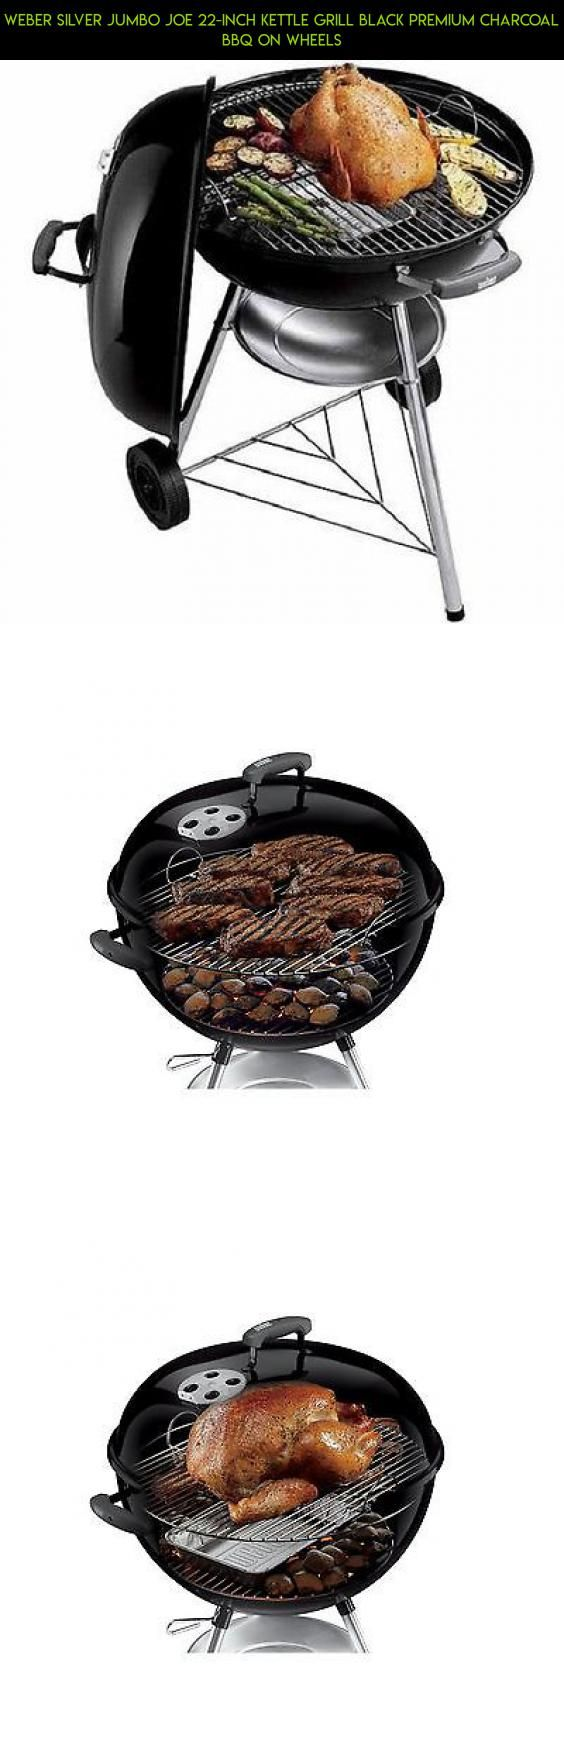 Weber Silver Jumbo Joe 22-Inch Kettle Grill Black Premium Charcoal BBQ On Wheels #gadgets #technology #plans #camera #bbq #kit #tech #drone #grills #products #shopping #racing #parts #fpv #charcoal